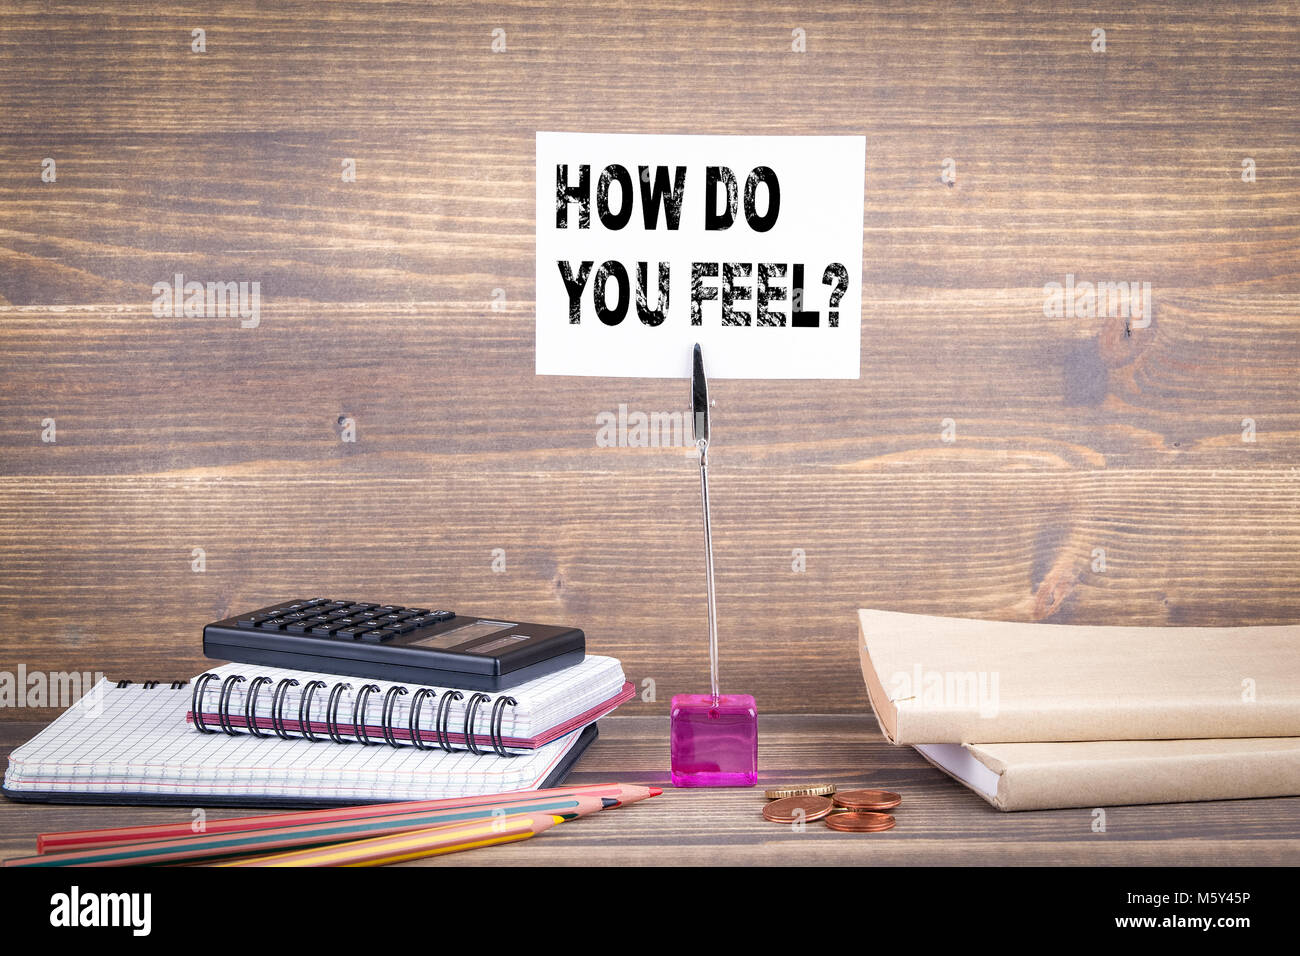 How Do You Feel. Wooden table with stationery - Stock Image